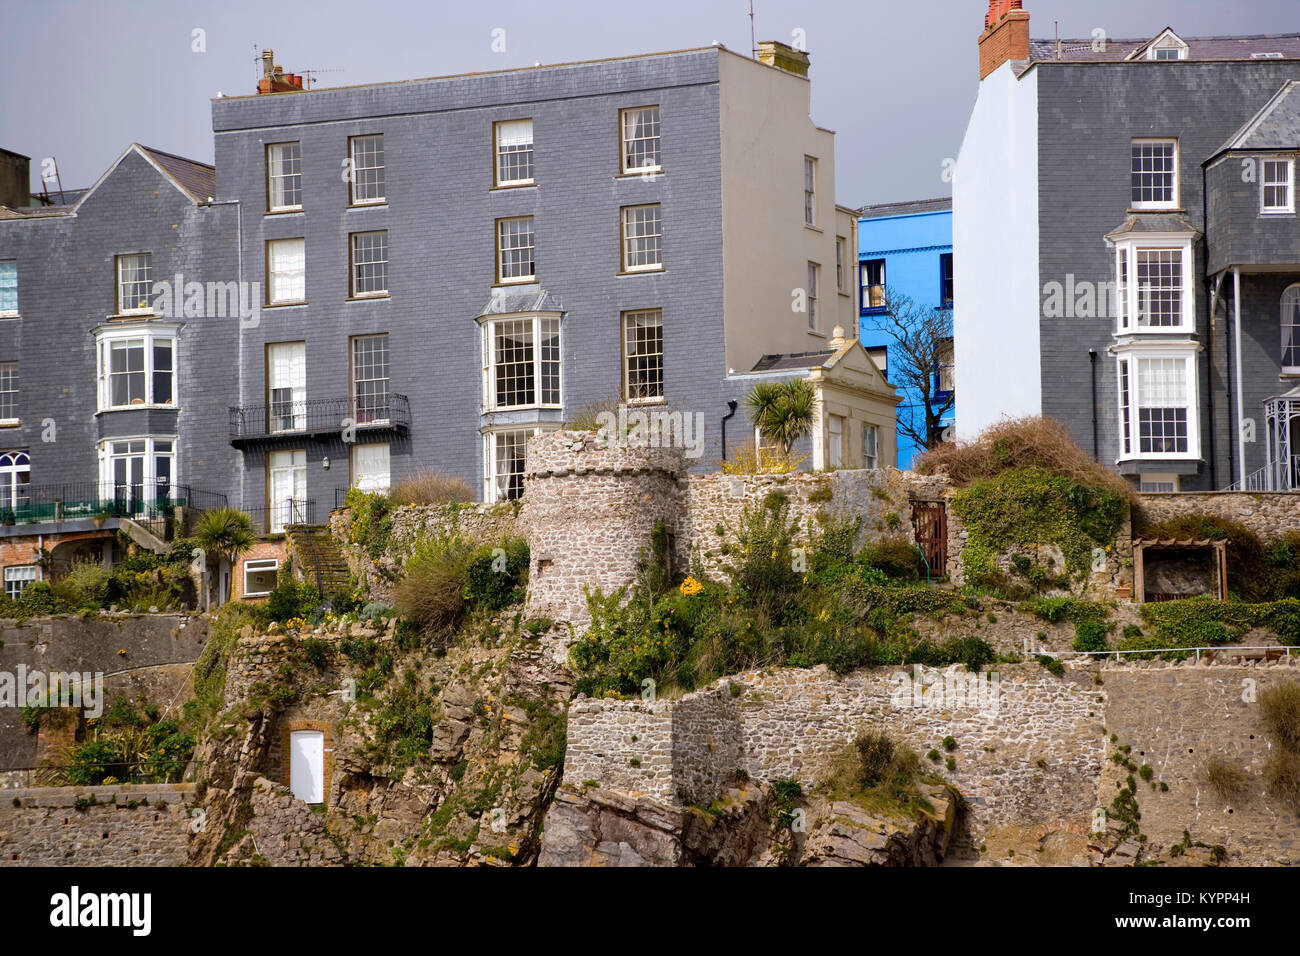 Immagini Case Grigie : Tenby wales houses on cliffs immagini tenby wales houses on